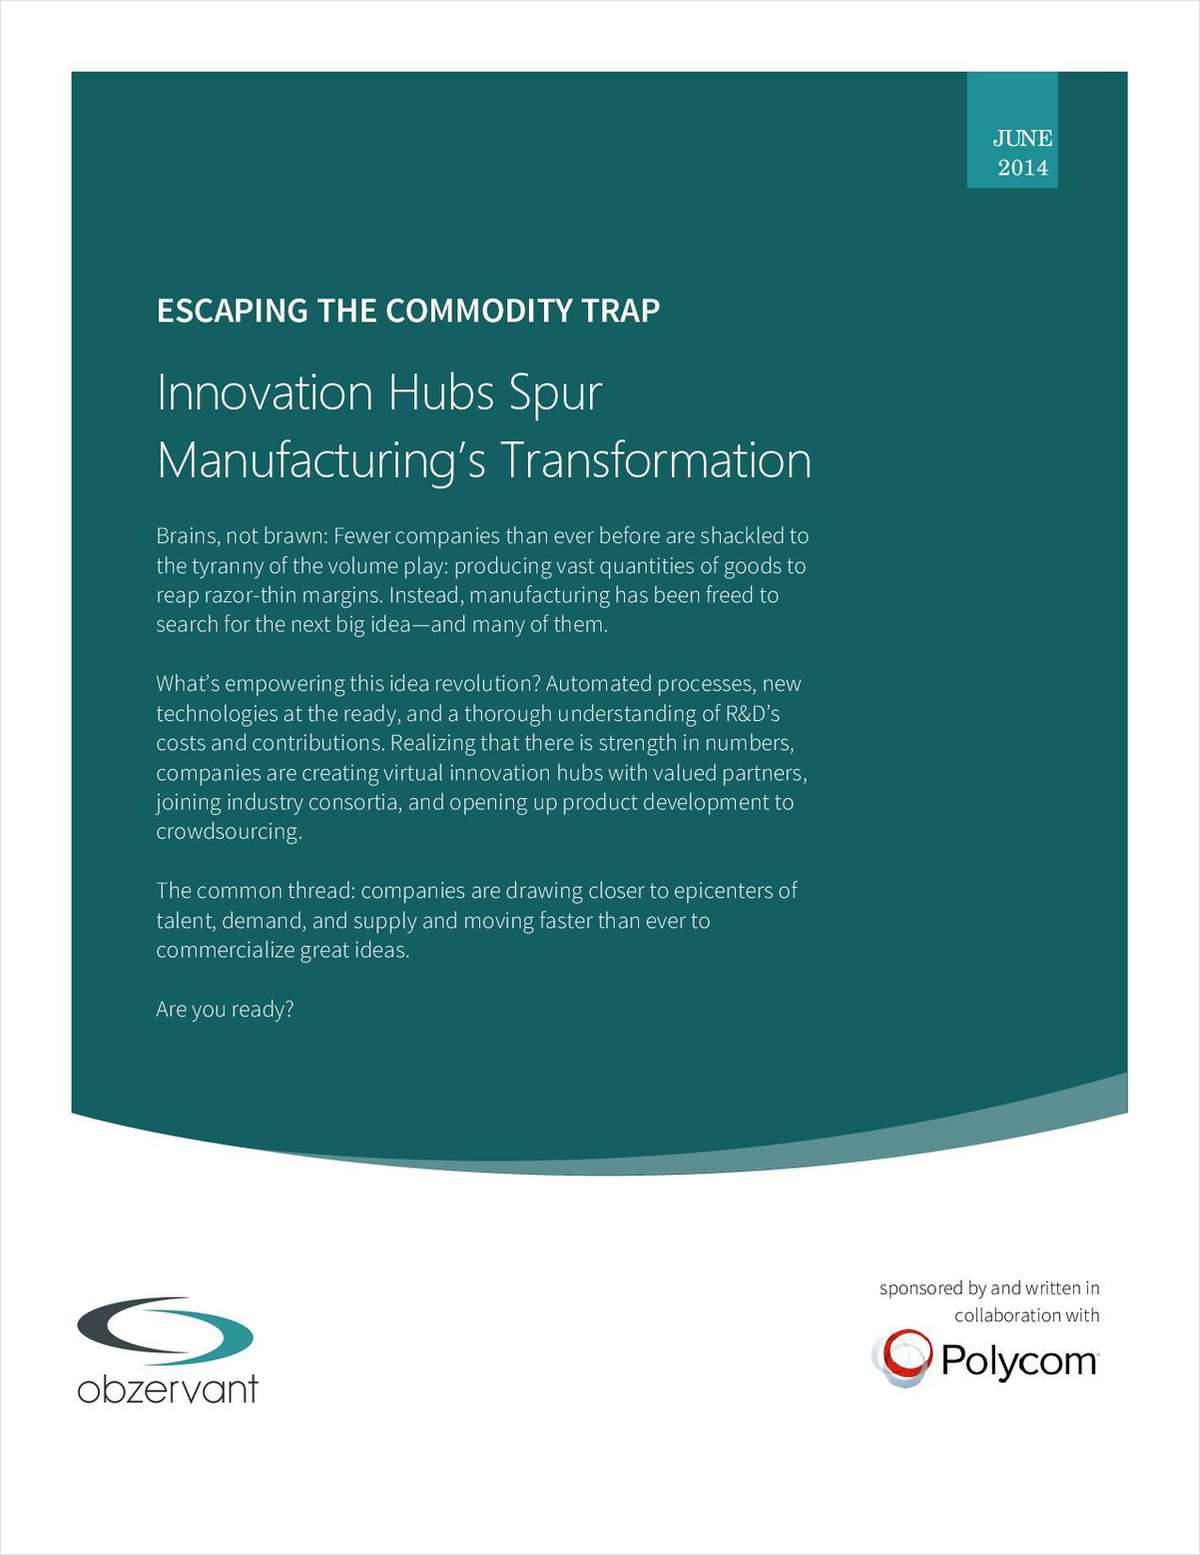 Escaping the Commodity Trap: Innovation Hubs Spur Manufacturing's Transformation